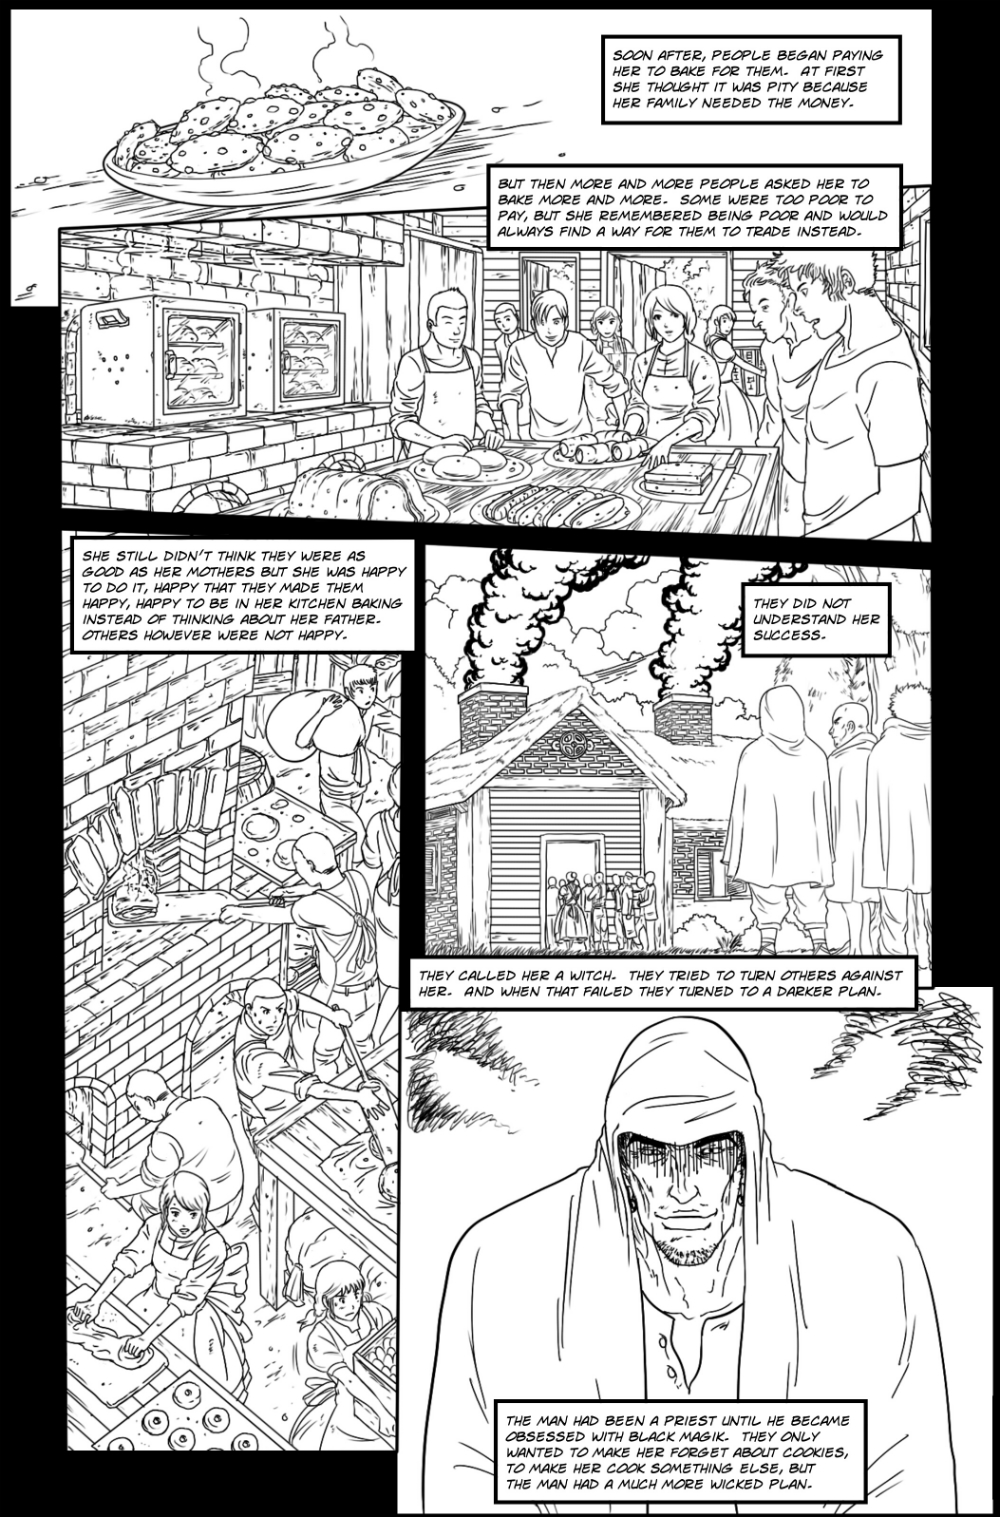 SAFE AND HAPPY HOME page 2 - story 7 in The Book of Lies